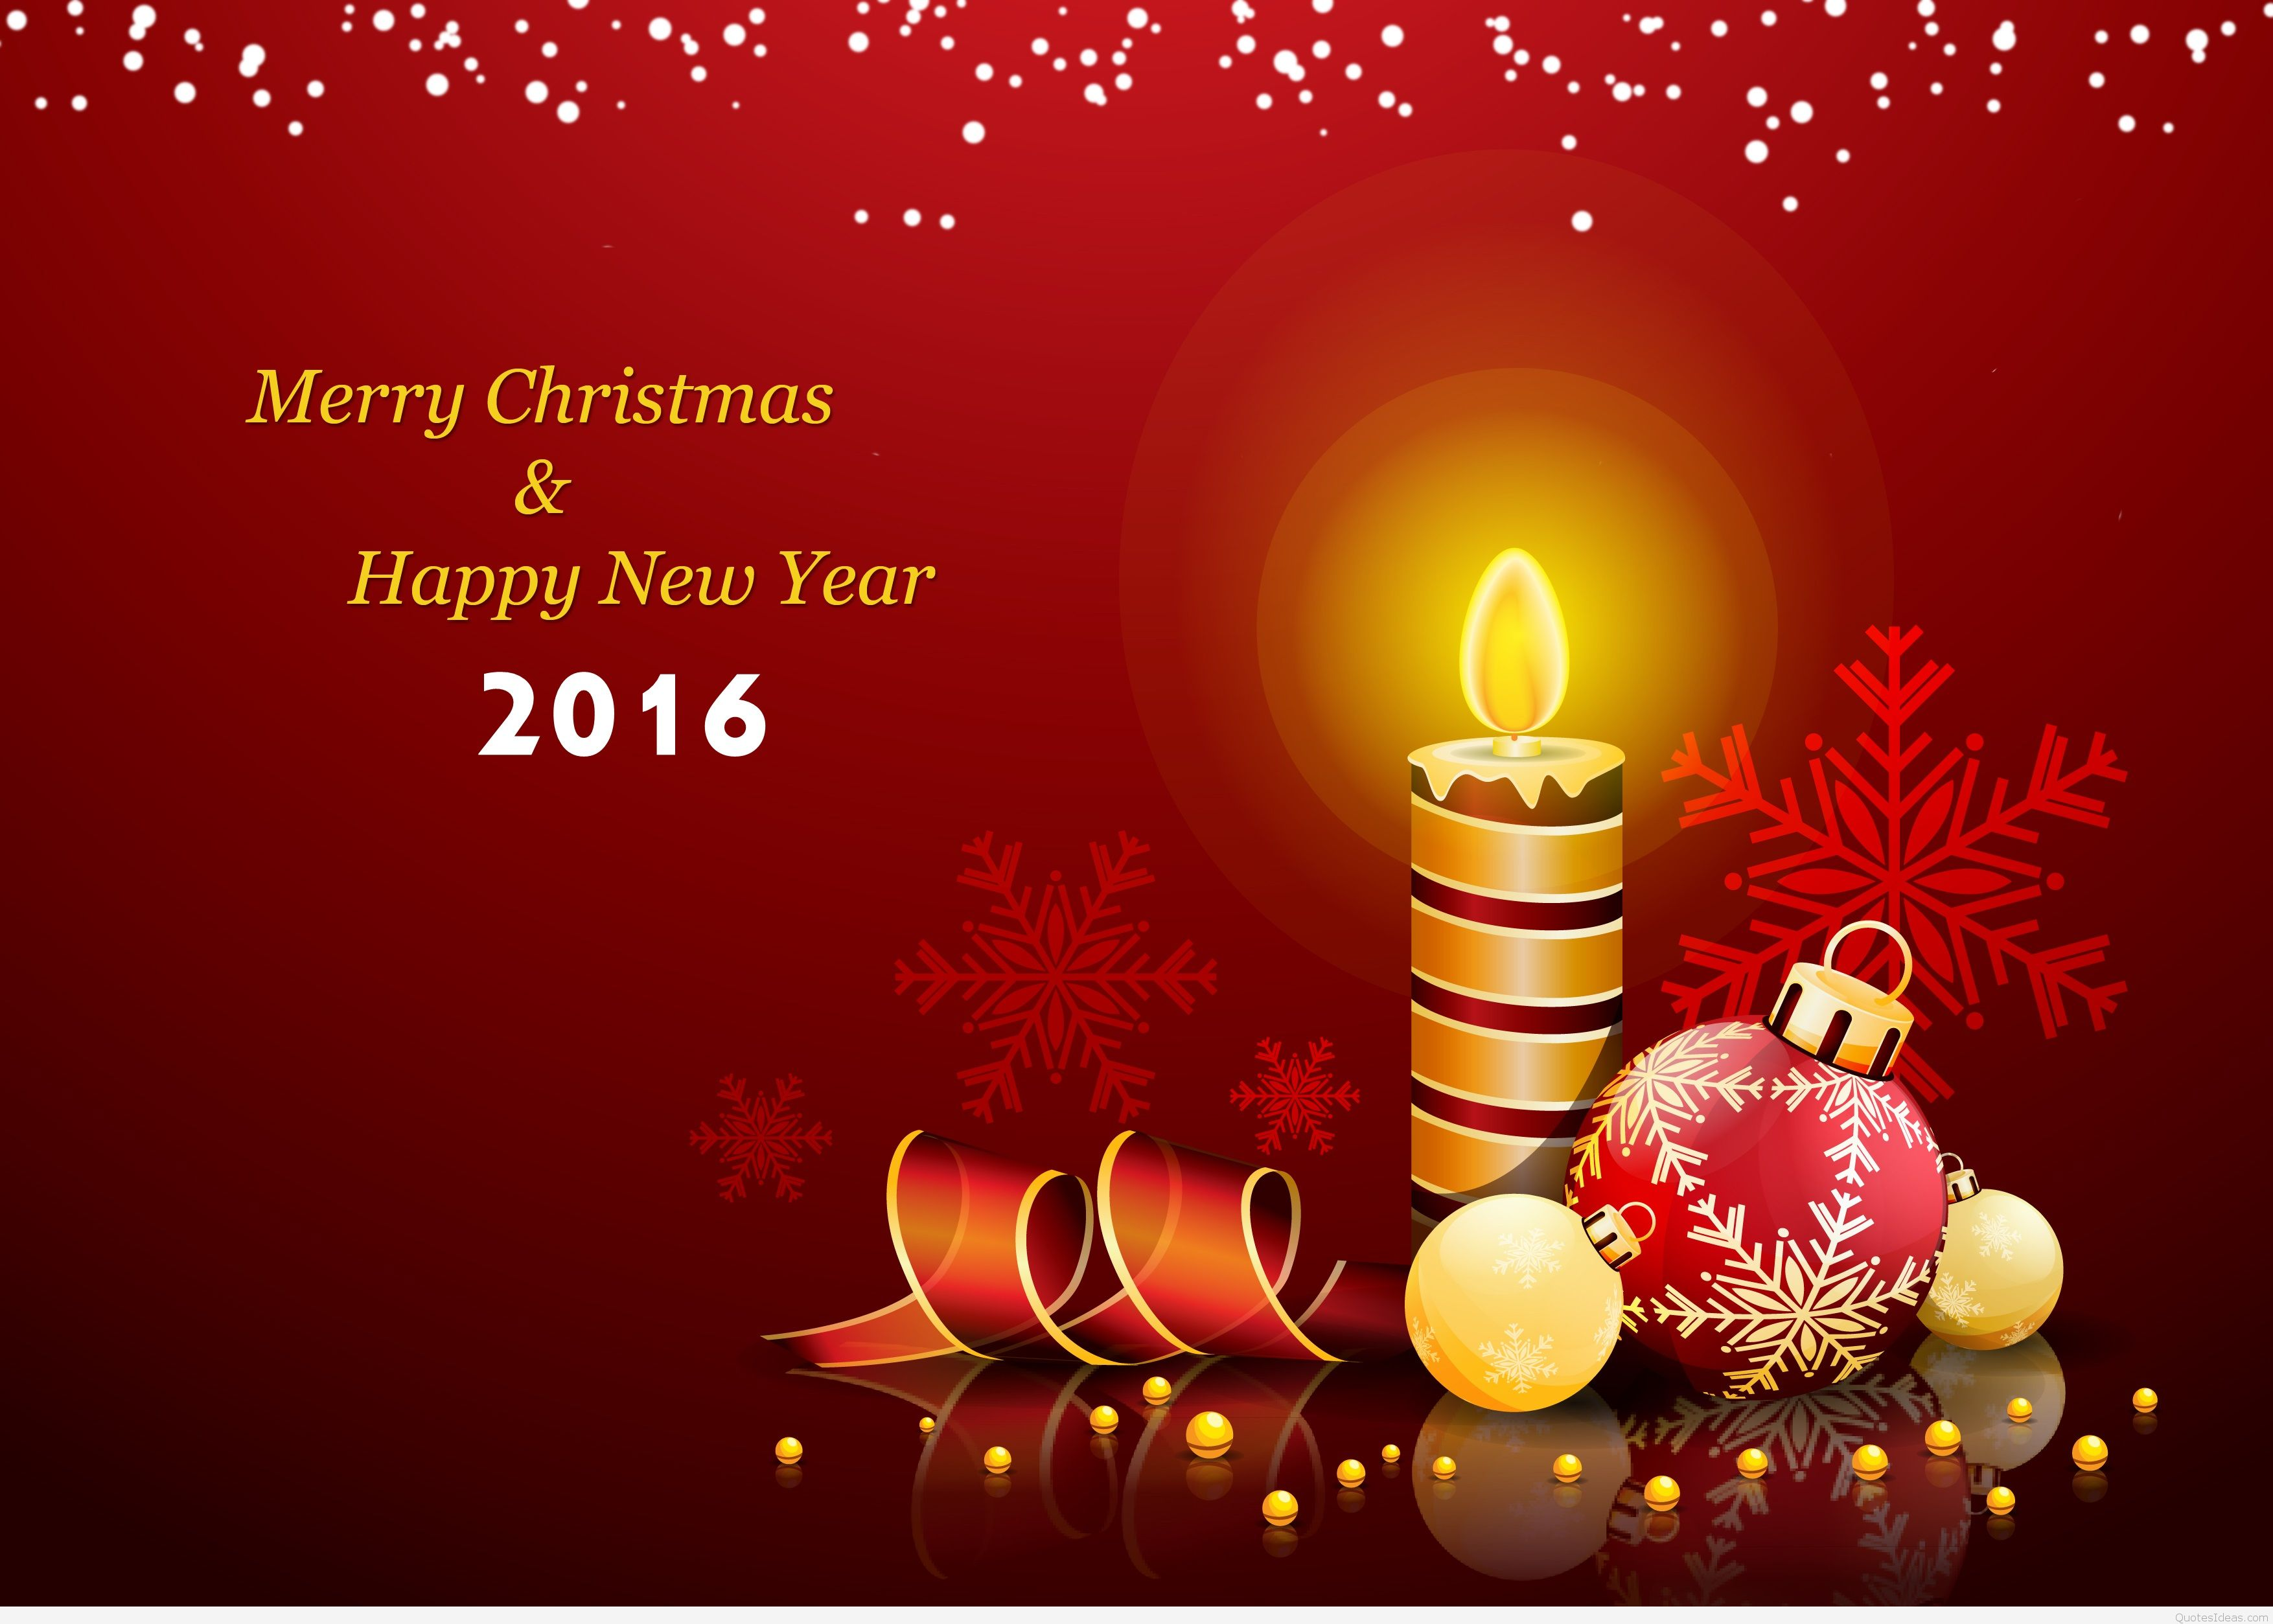 Best hd happy new year 2016 wallpapers for your desktop pc you can also download all these wallpapers form the all in one zip file for new year 2016 wallpapers kristyandbryce Choice Image